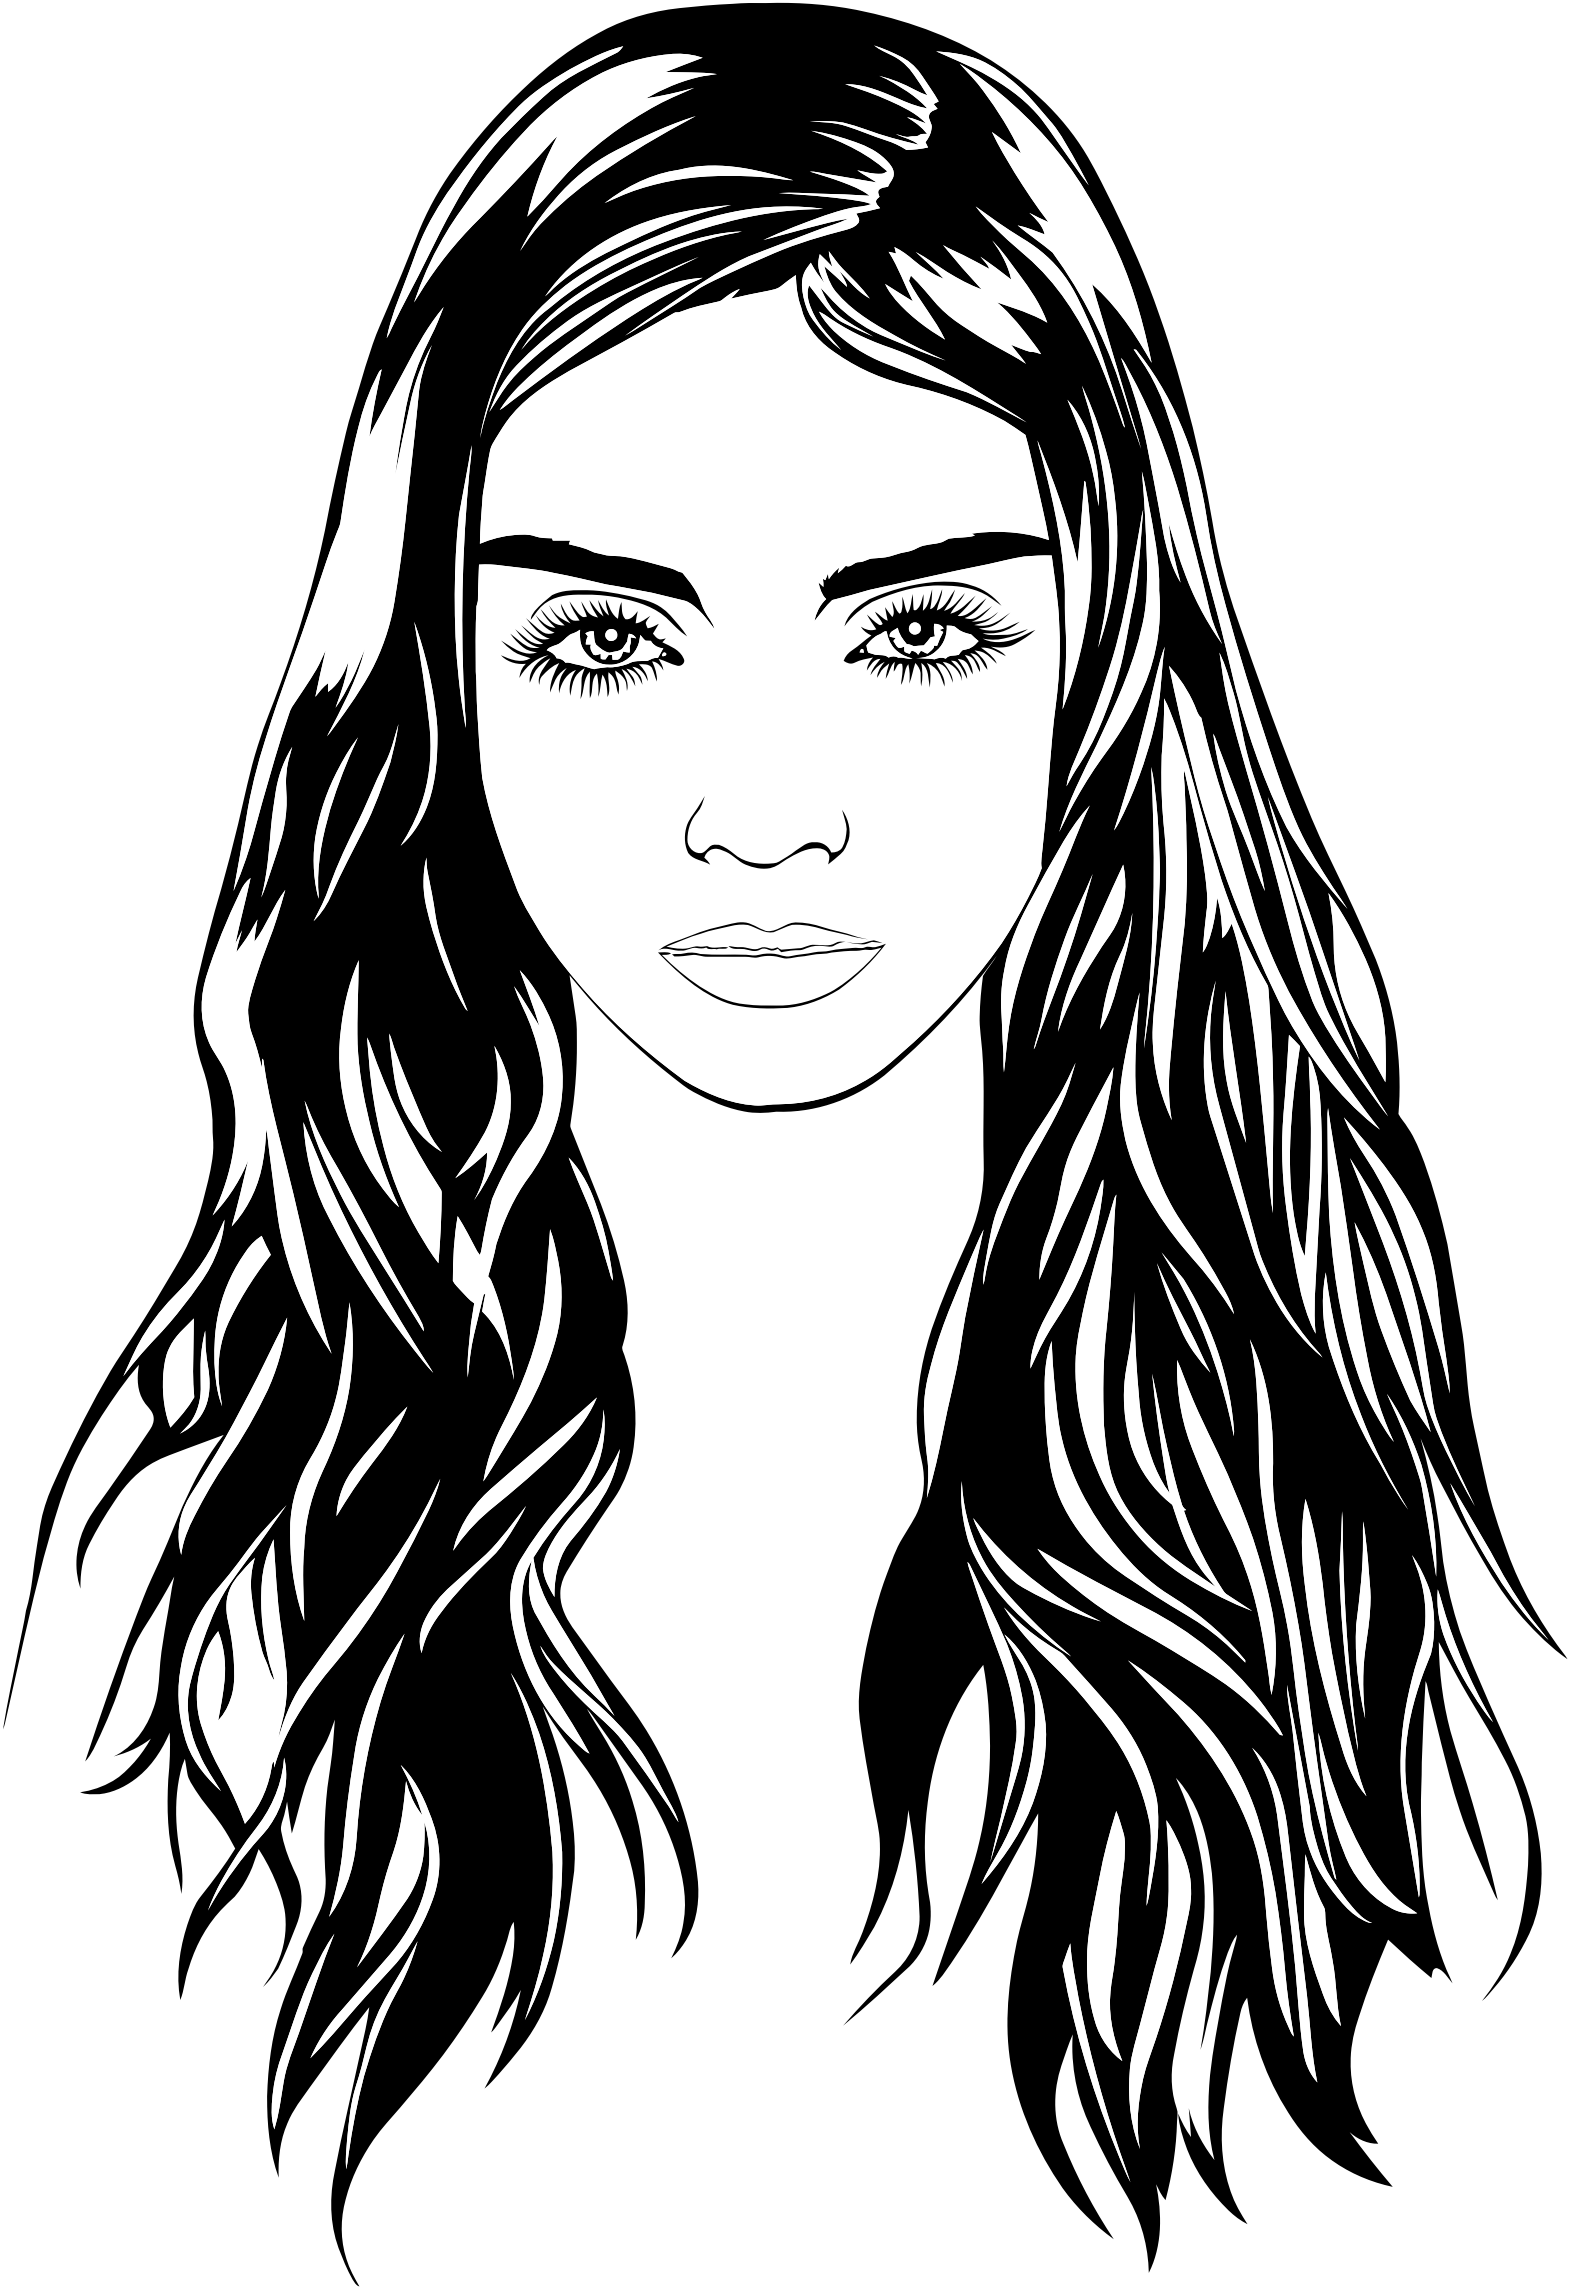 Woman With Cold Stare Line Art by GDJ